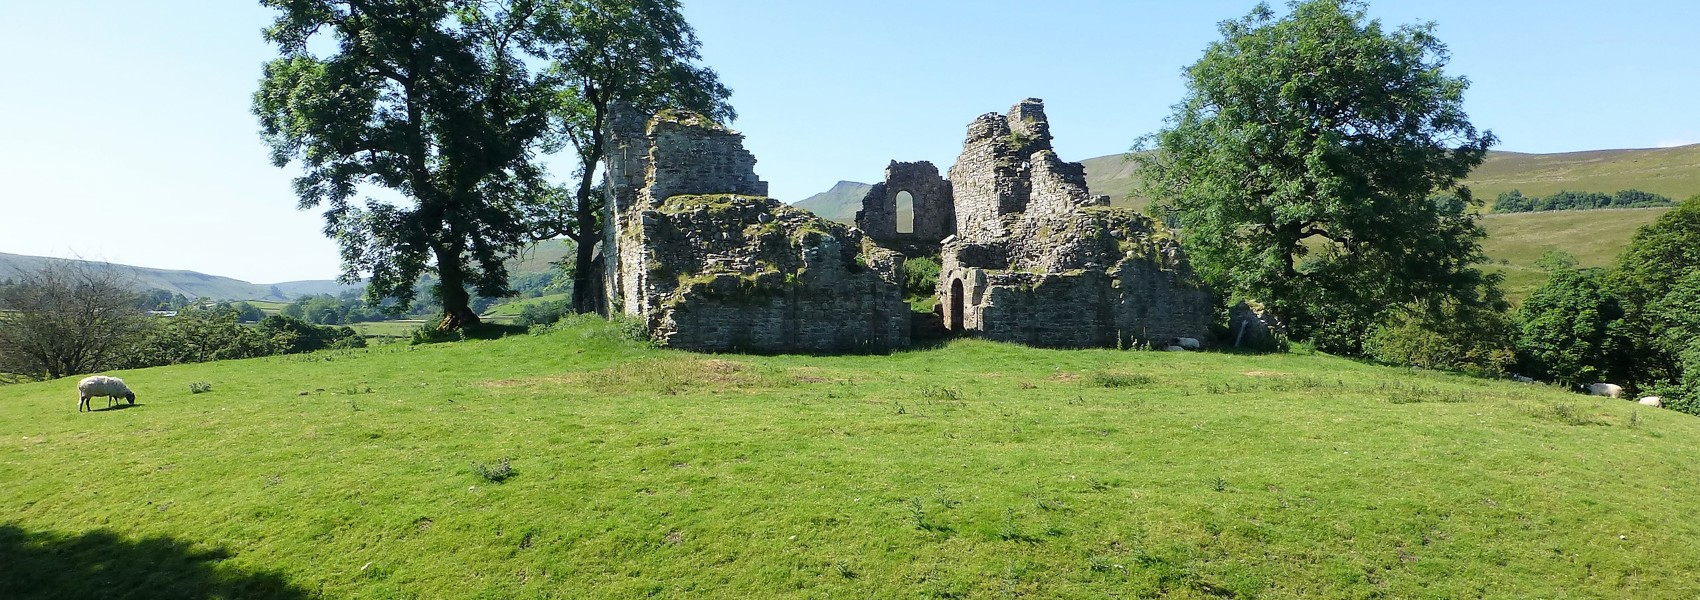 Lime kiln excavated at Pendragon Castle